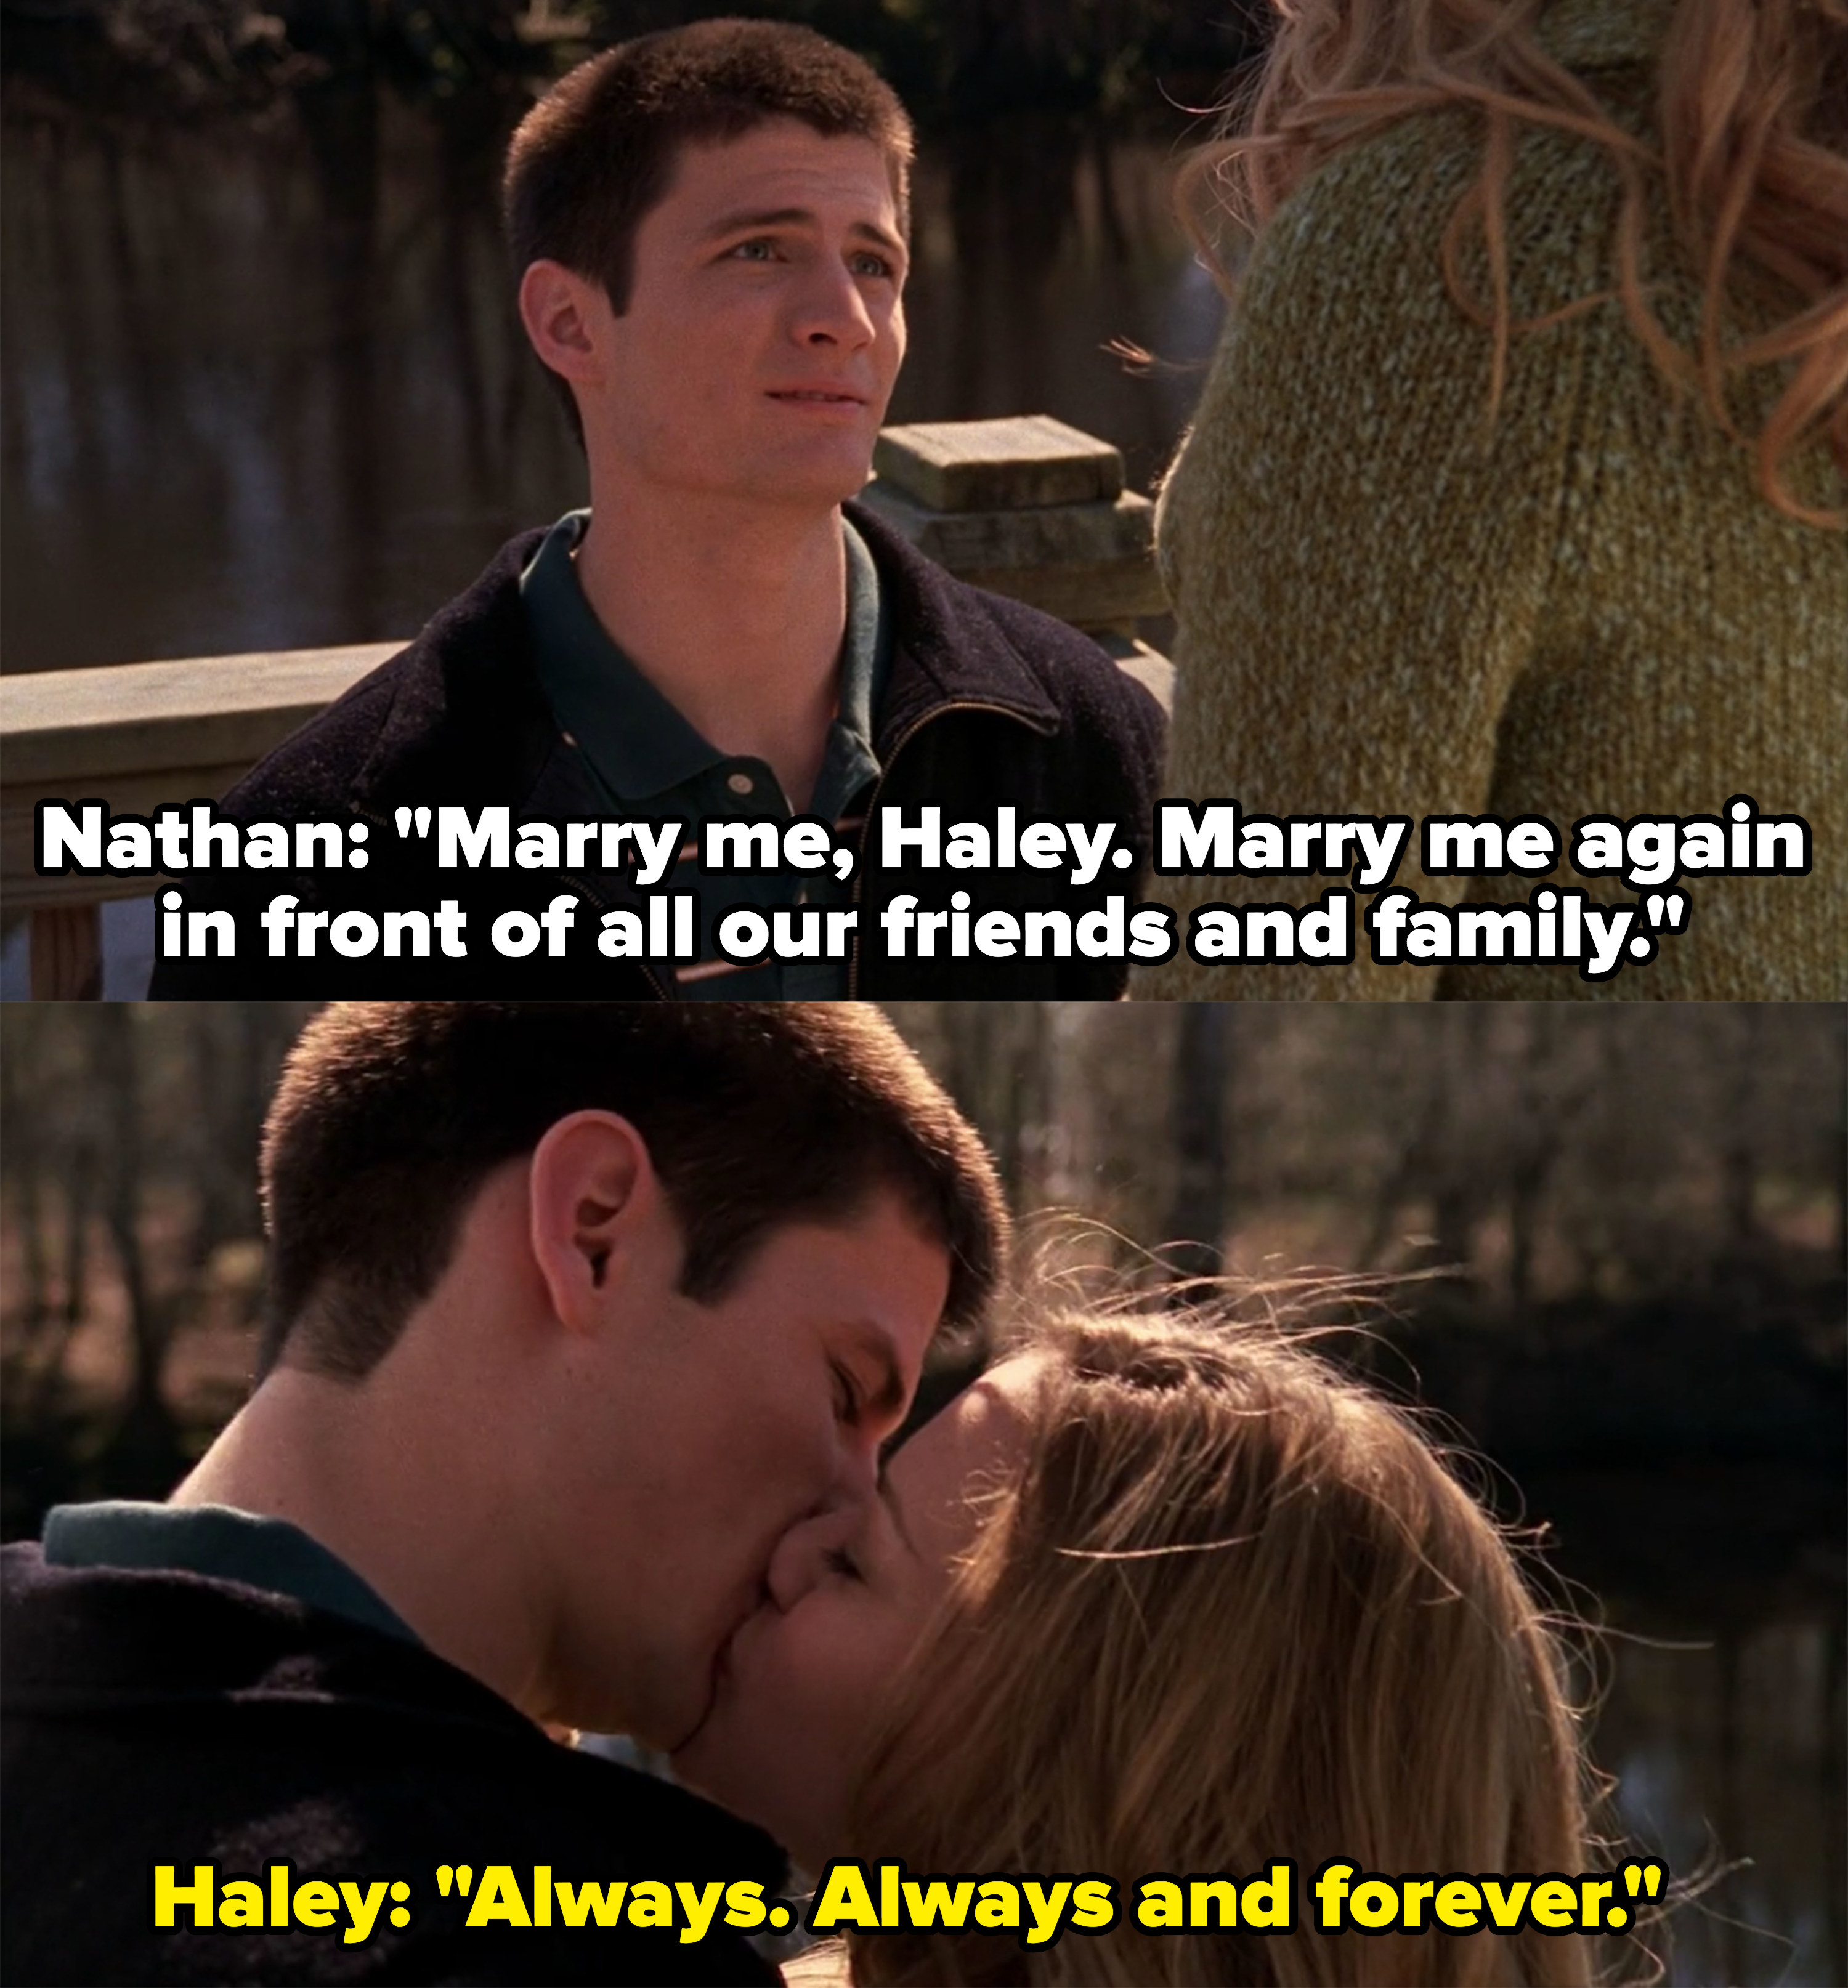 """Nathan asks Haley to marry him again in front of all their friends and family, she replies """"always and forever"""" and kisses him"""